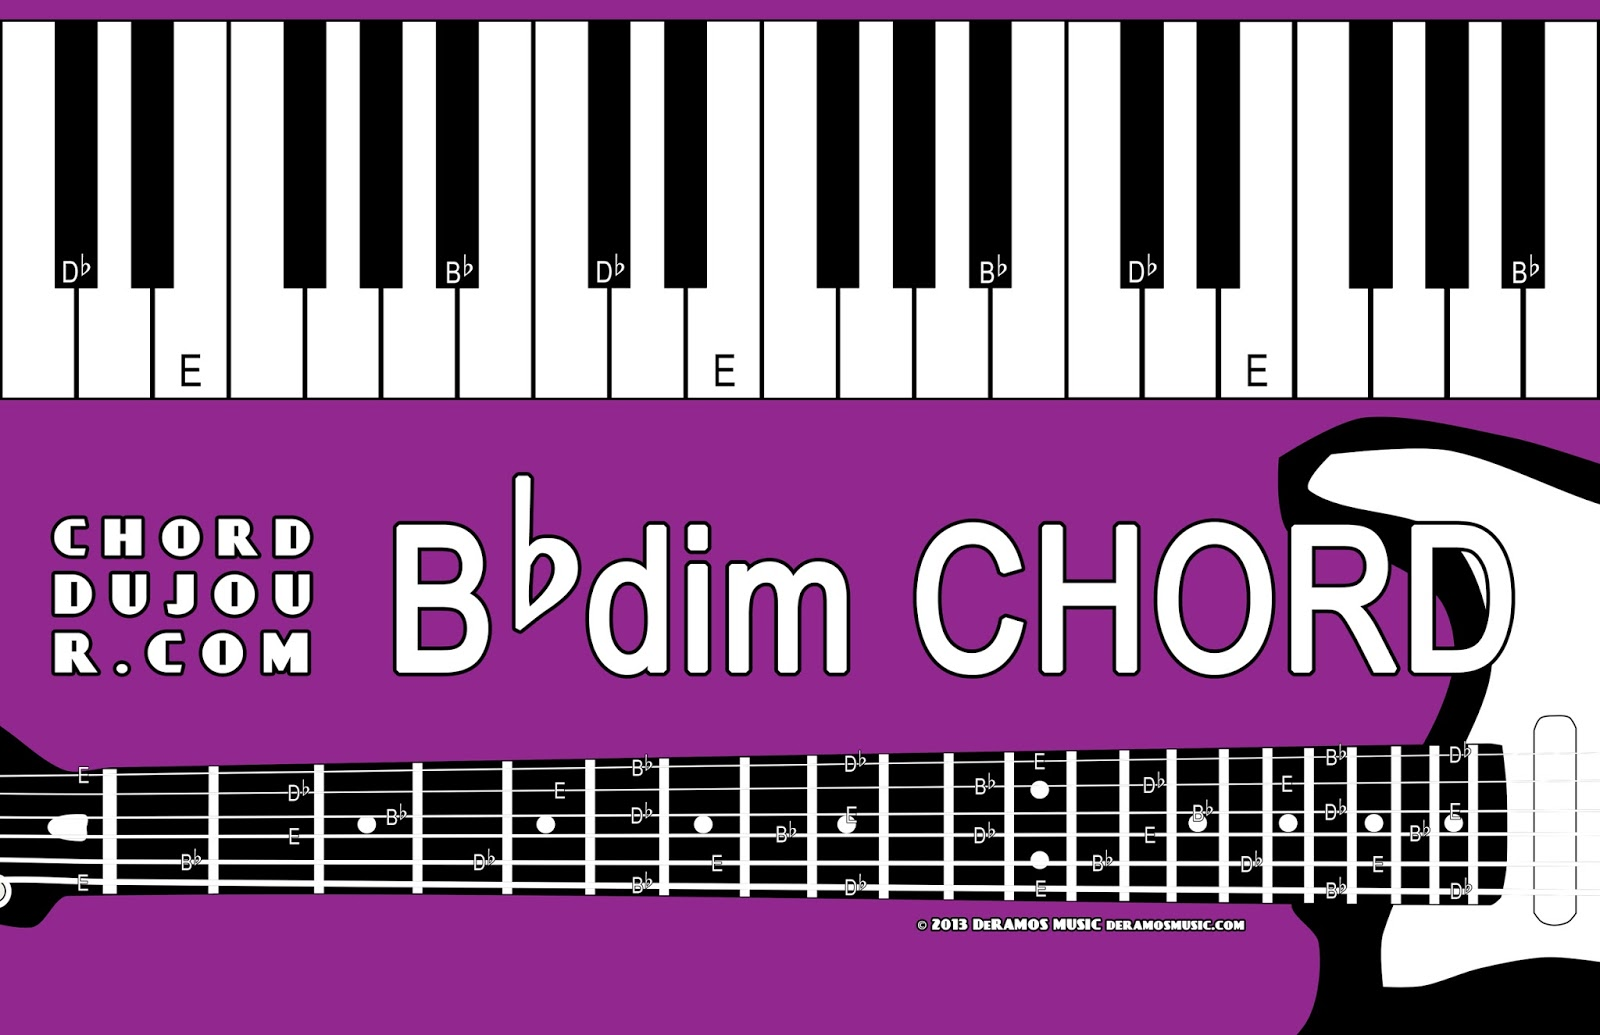 Chord du jour dictionary bbdim chord you could think of the b flat diminished chord as a gb7 chord without the g flat note here is a non standard non b d f spelling of the bbdim chord hexwebz Gallery